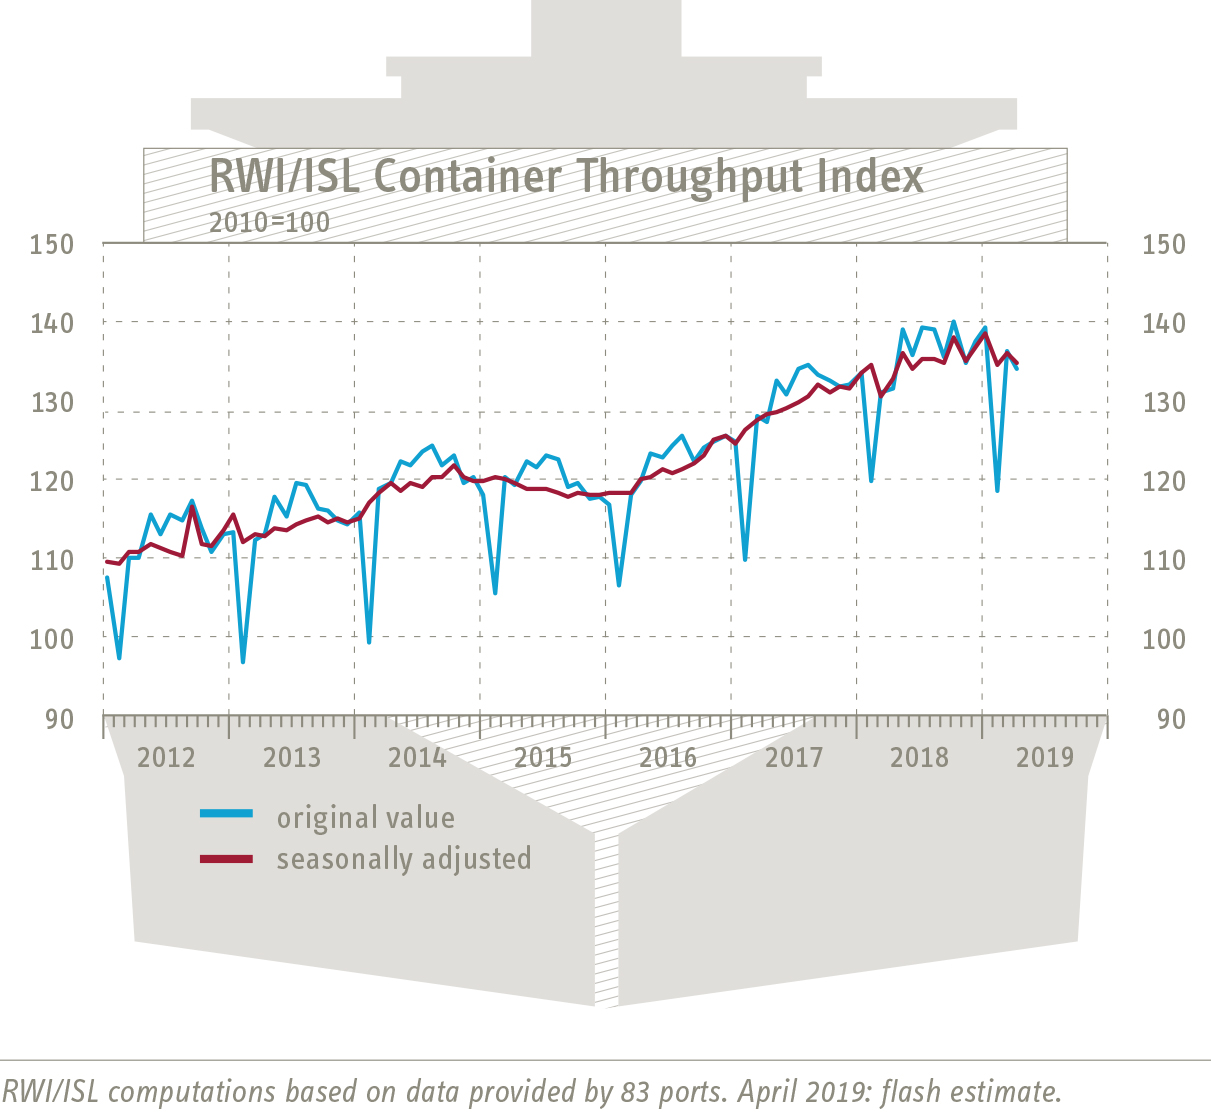 RWI/ISL Container Throughput Index: world trade in the red again